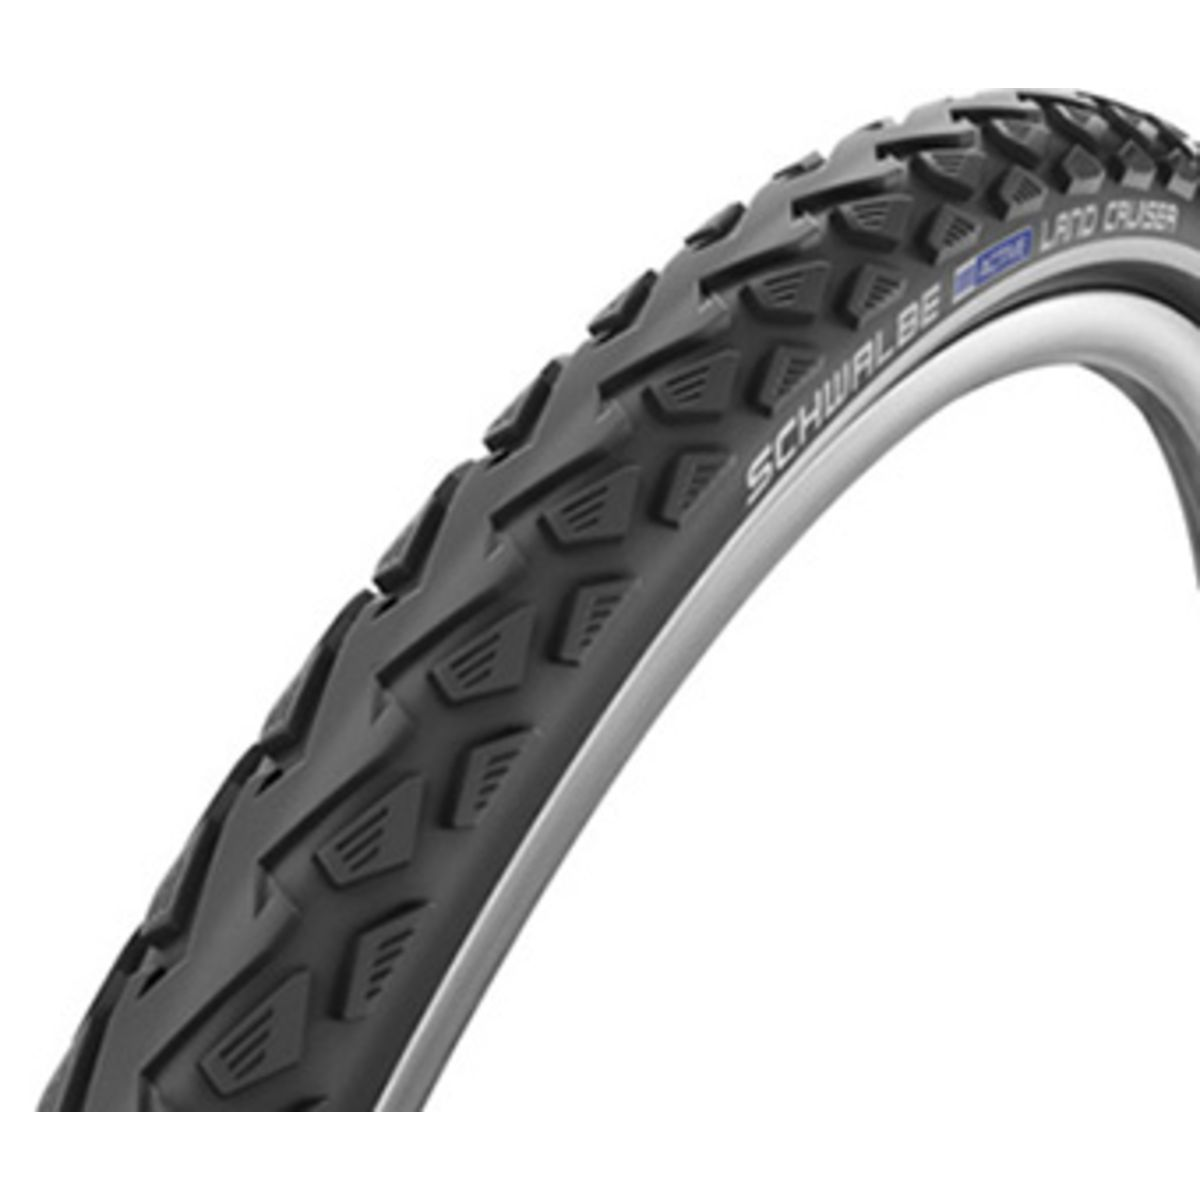 LAND CRUISER PLUS Active Line tyre HS 450, clincher tyre